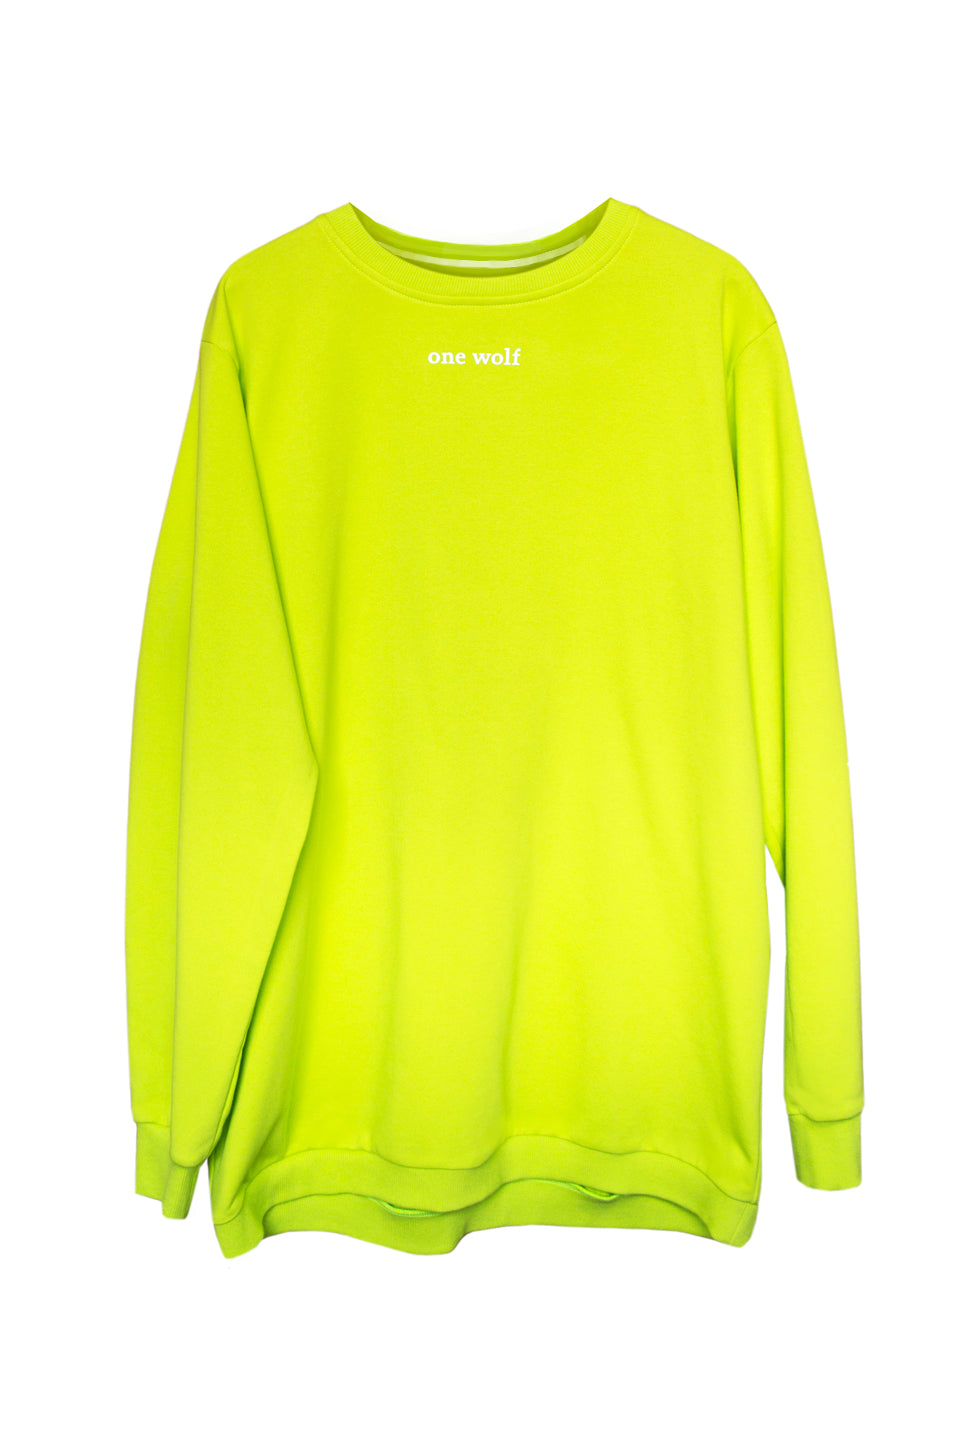 PLAIN sweater lime green - One Wolf